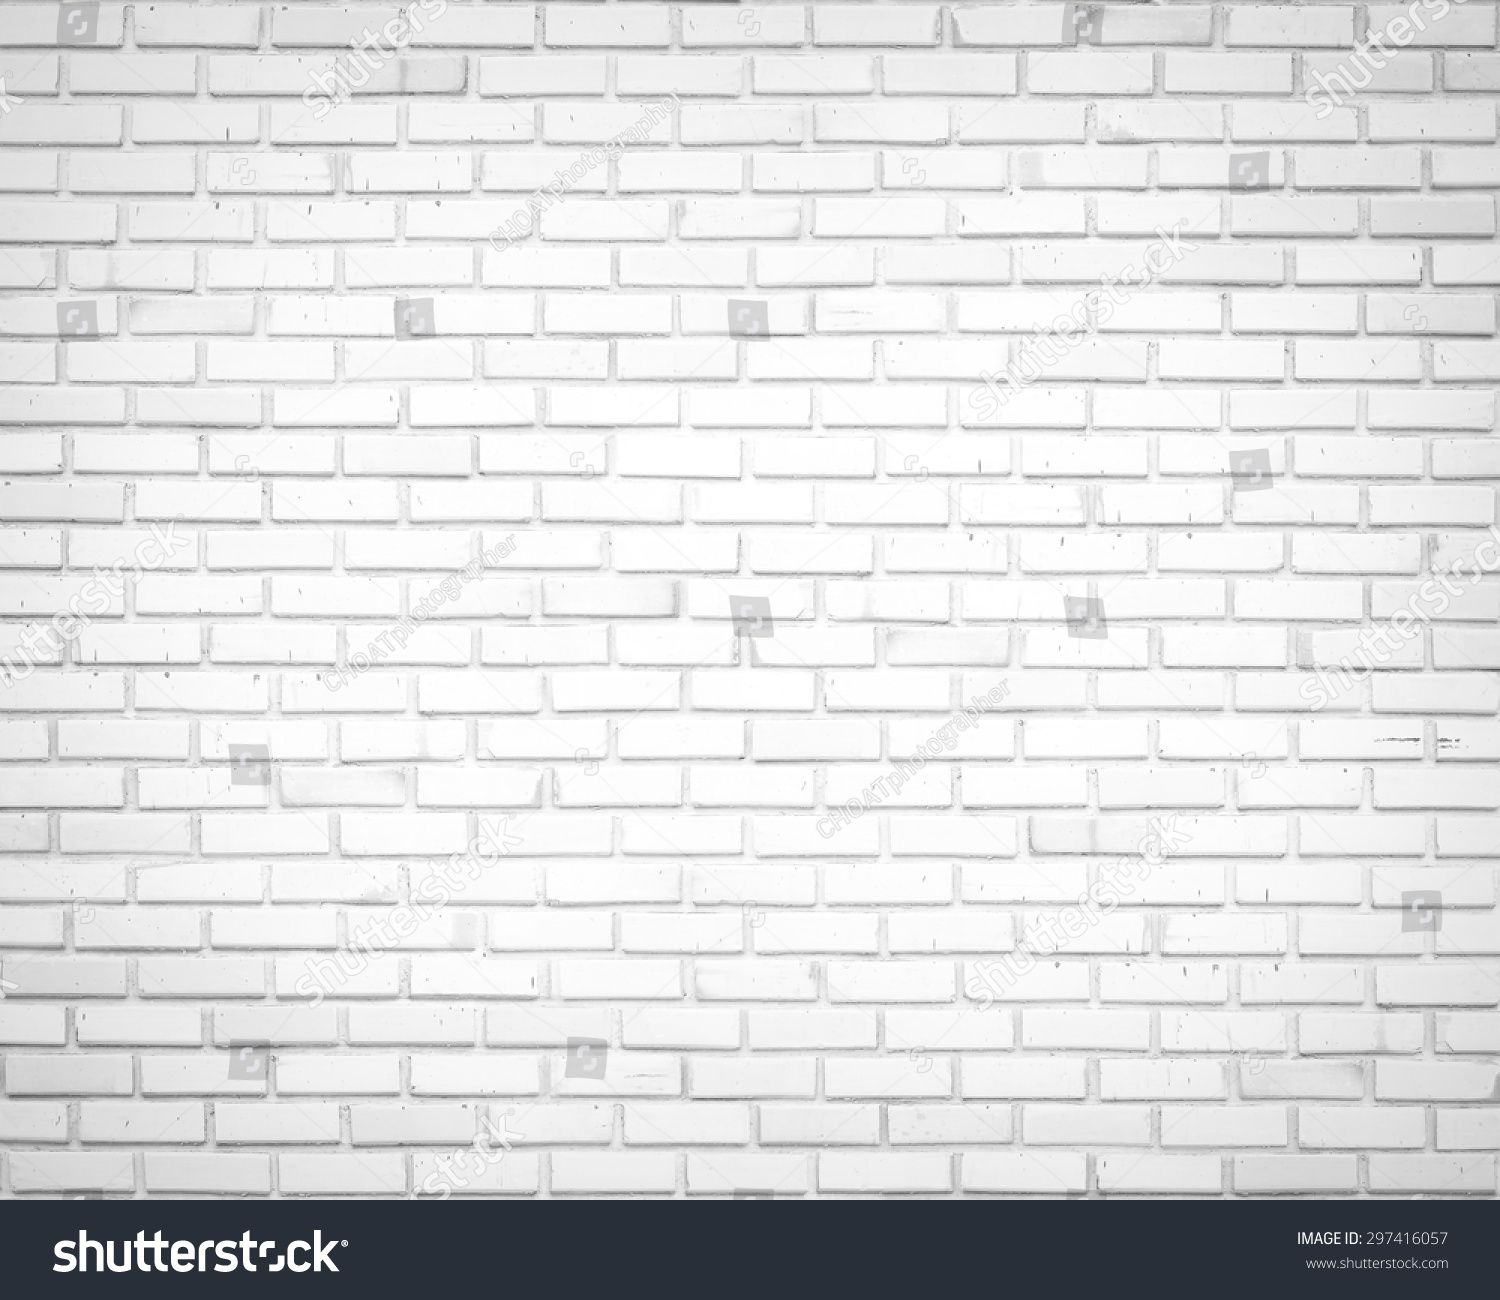 Abstract Square White Brick Wall Background Ad Ad White Square Abstract Background Brick Wall Background White Brick Walls White Brick